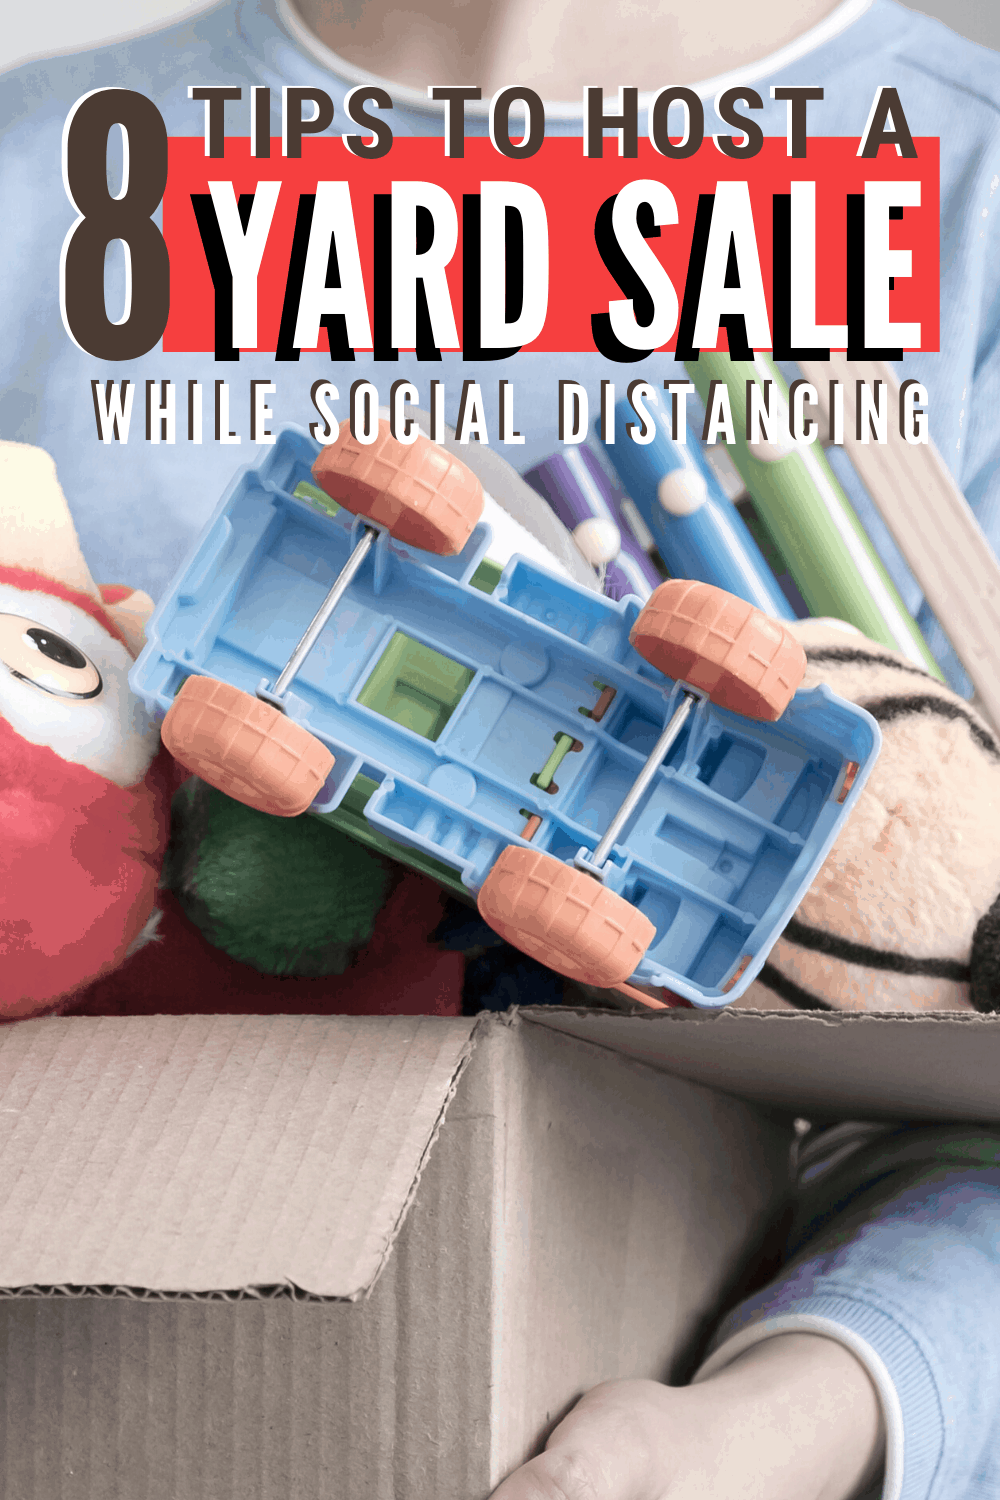 In many areas of the country, it is possible to host a yard sale by following eight tips to help you organize one while following social distancing. #yardsale #socialdistancing #summer #makemoney via @mystayathome